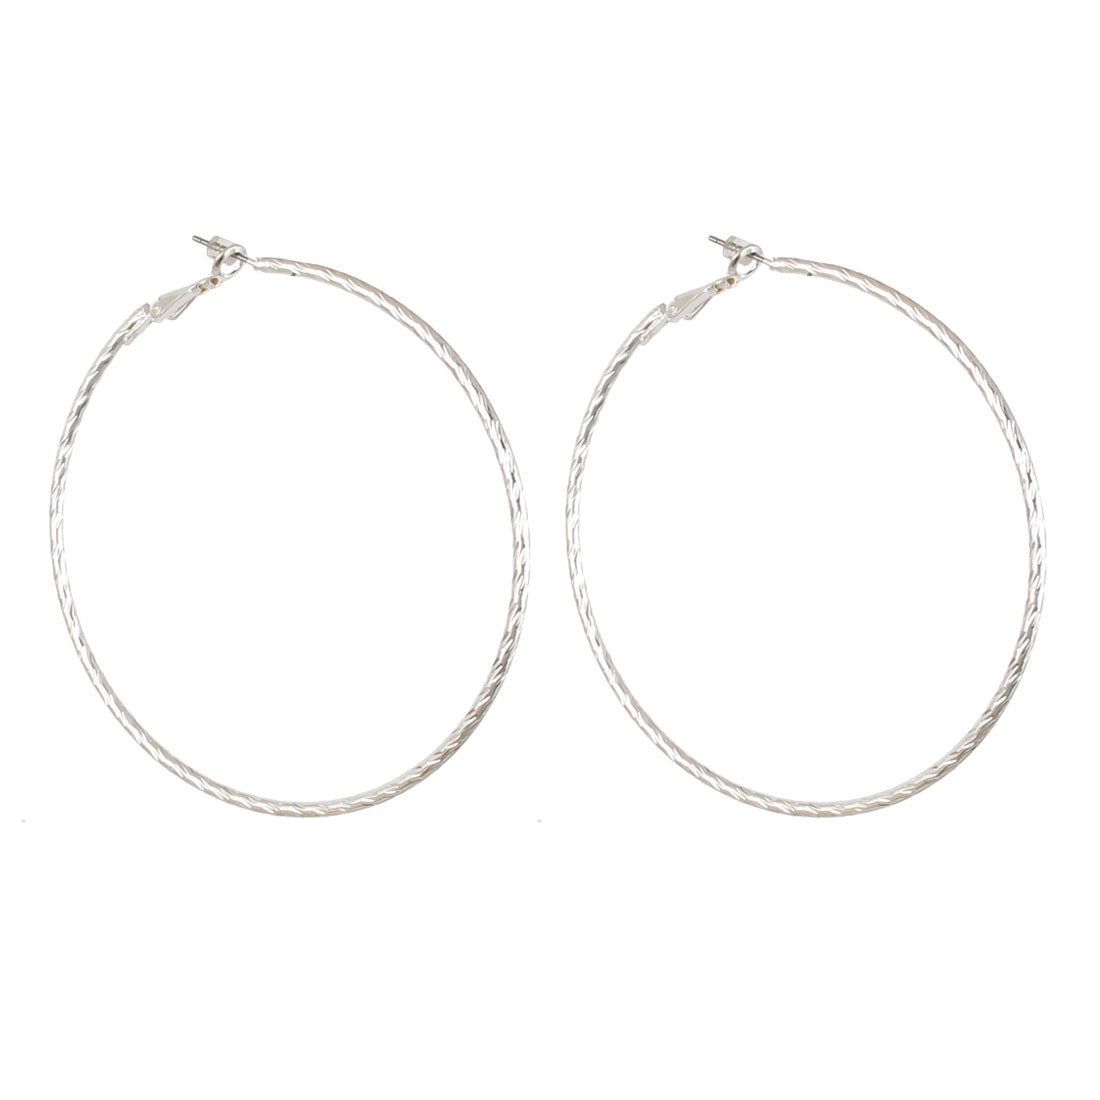 "3"" Dia Silver Tone Metal Textured Narrow Edge Round Circle Hoop Pierced Earrings Pair for Lady Women"